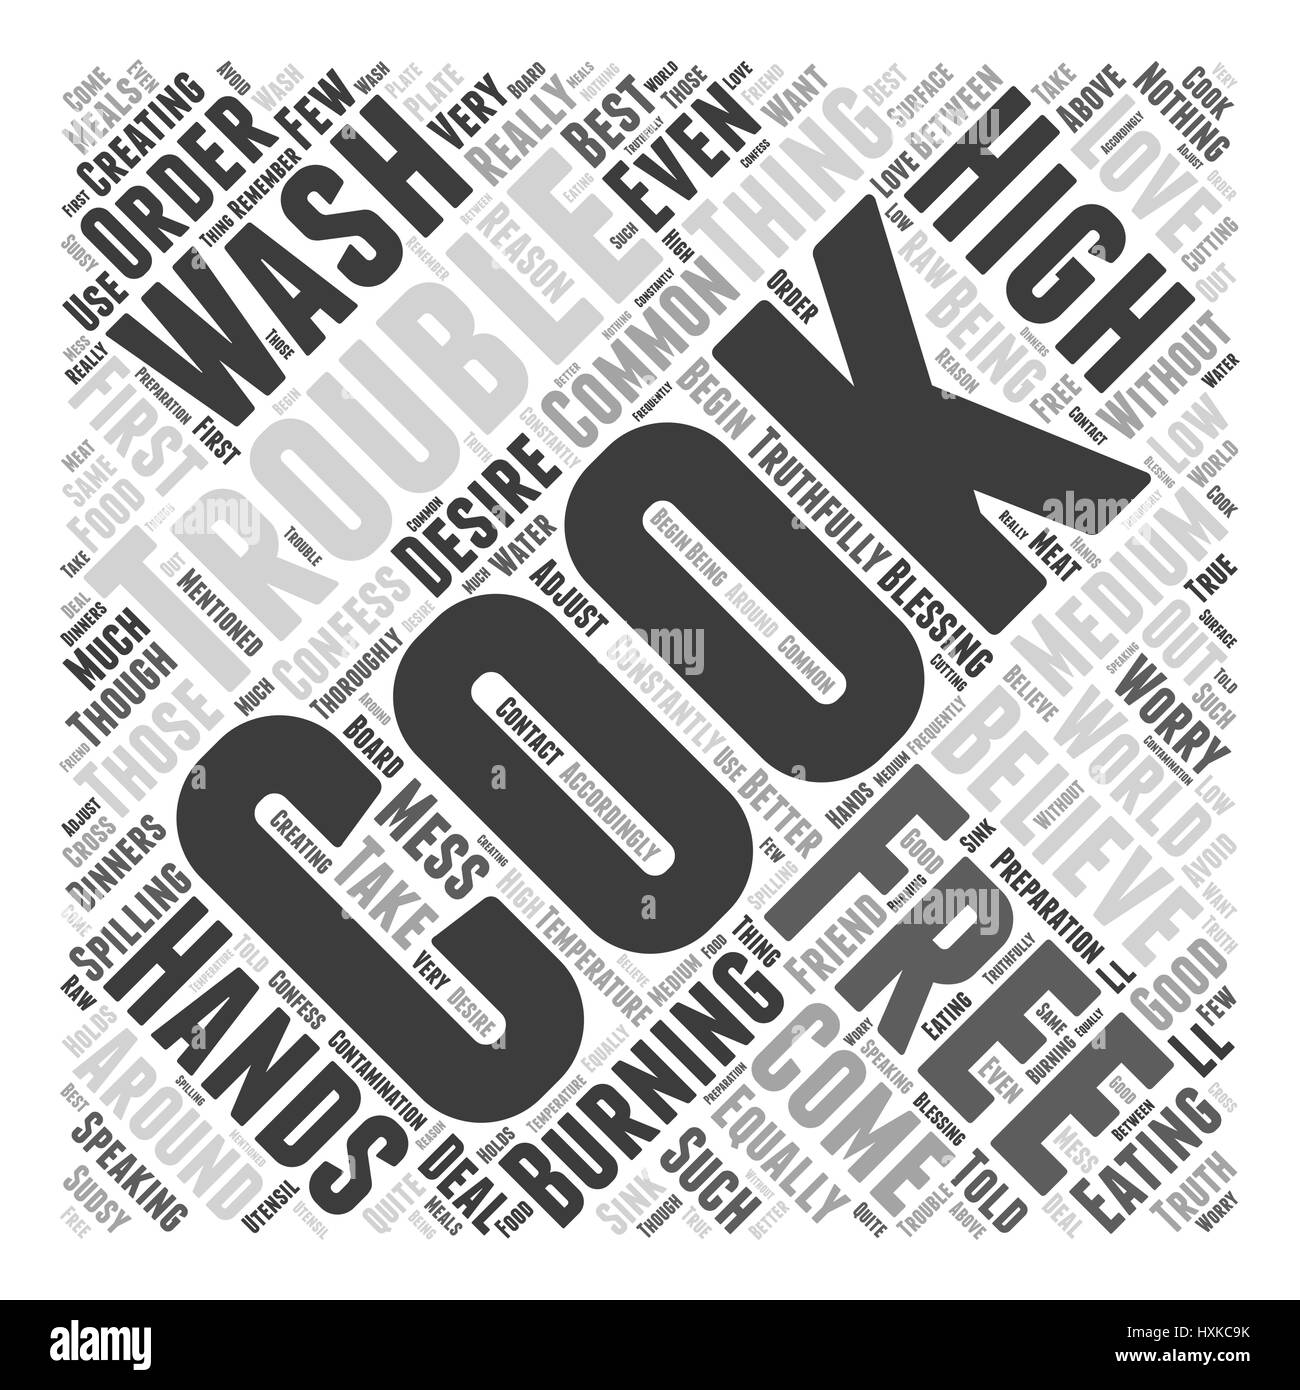 Image result for Trouble Free Cooking?